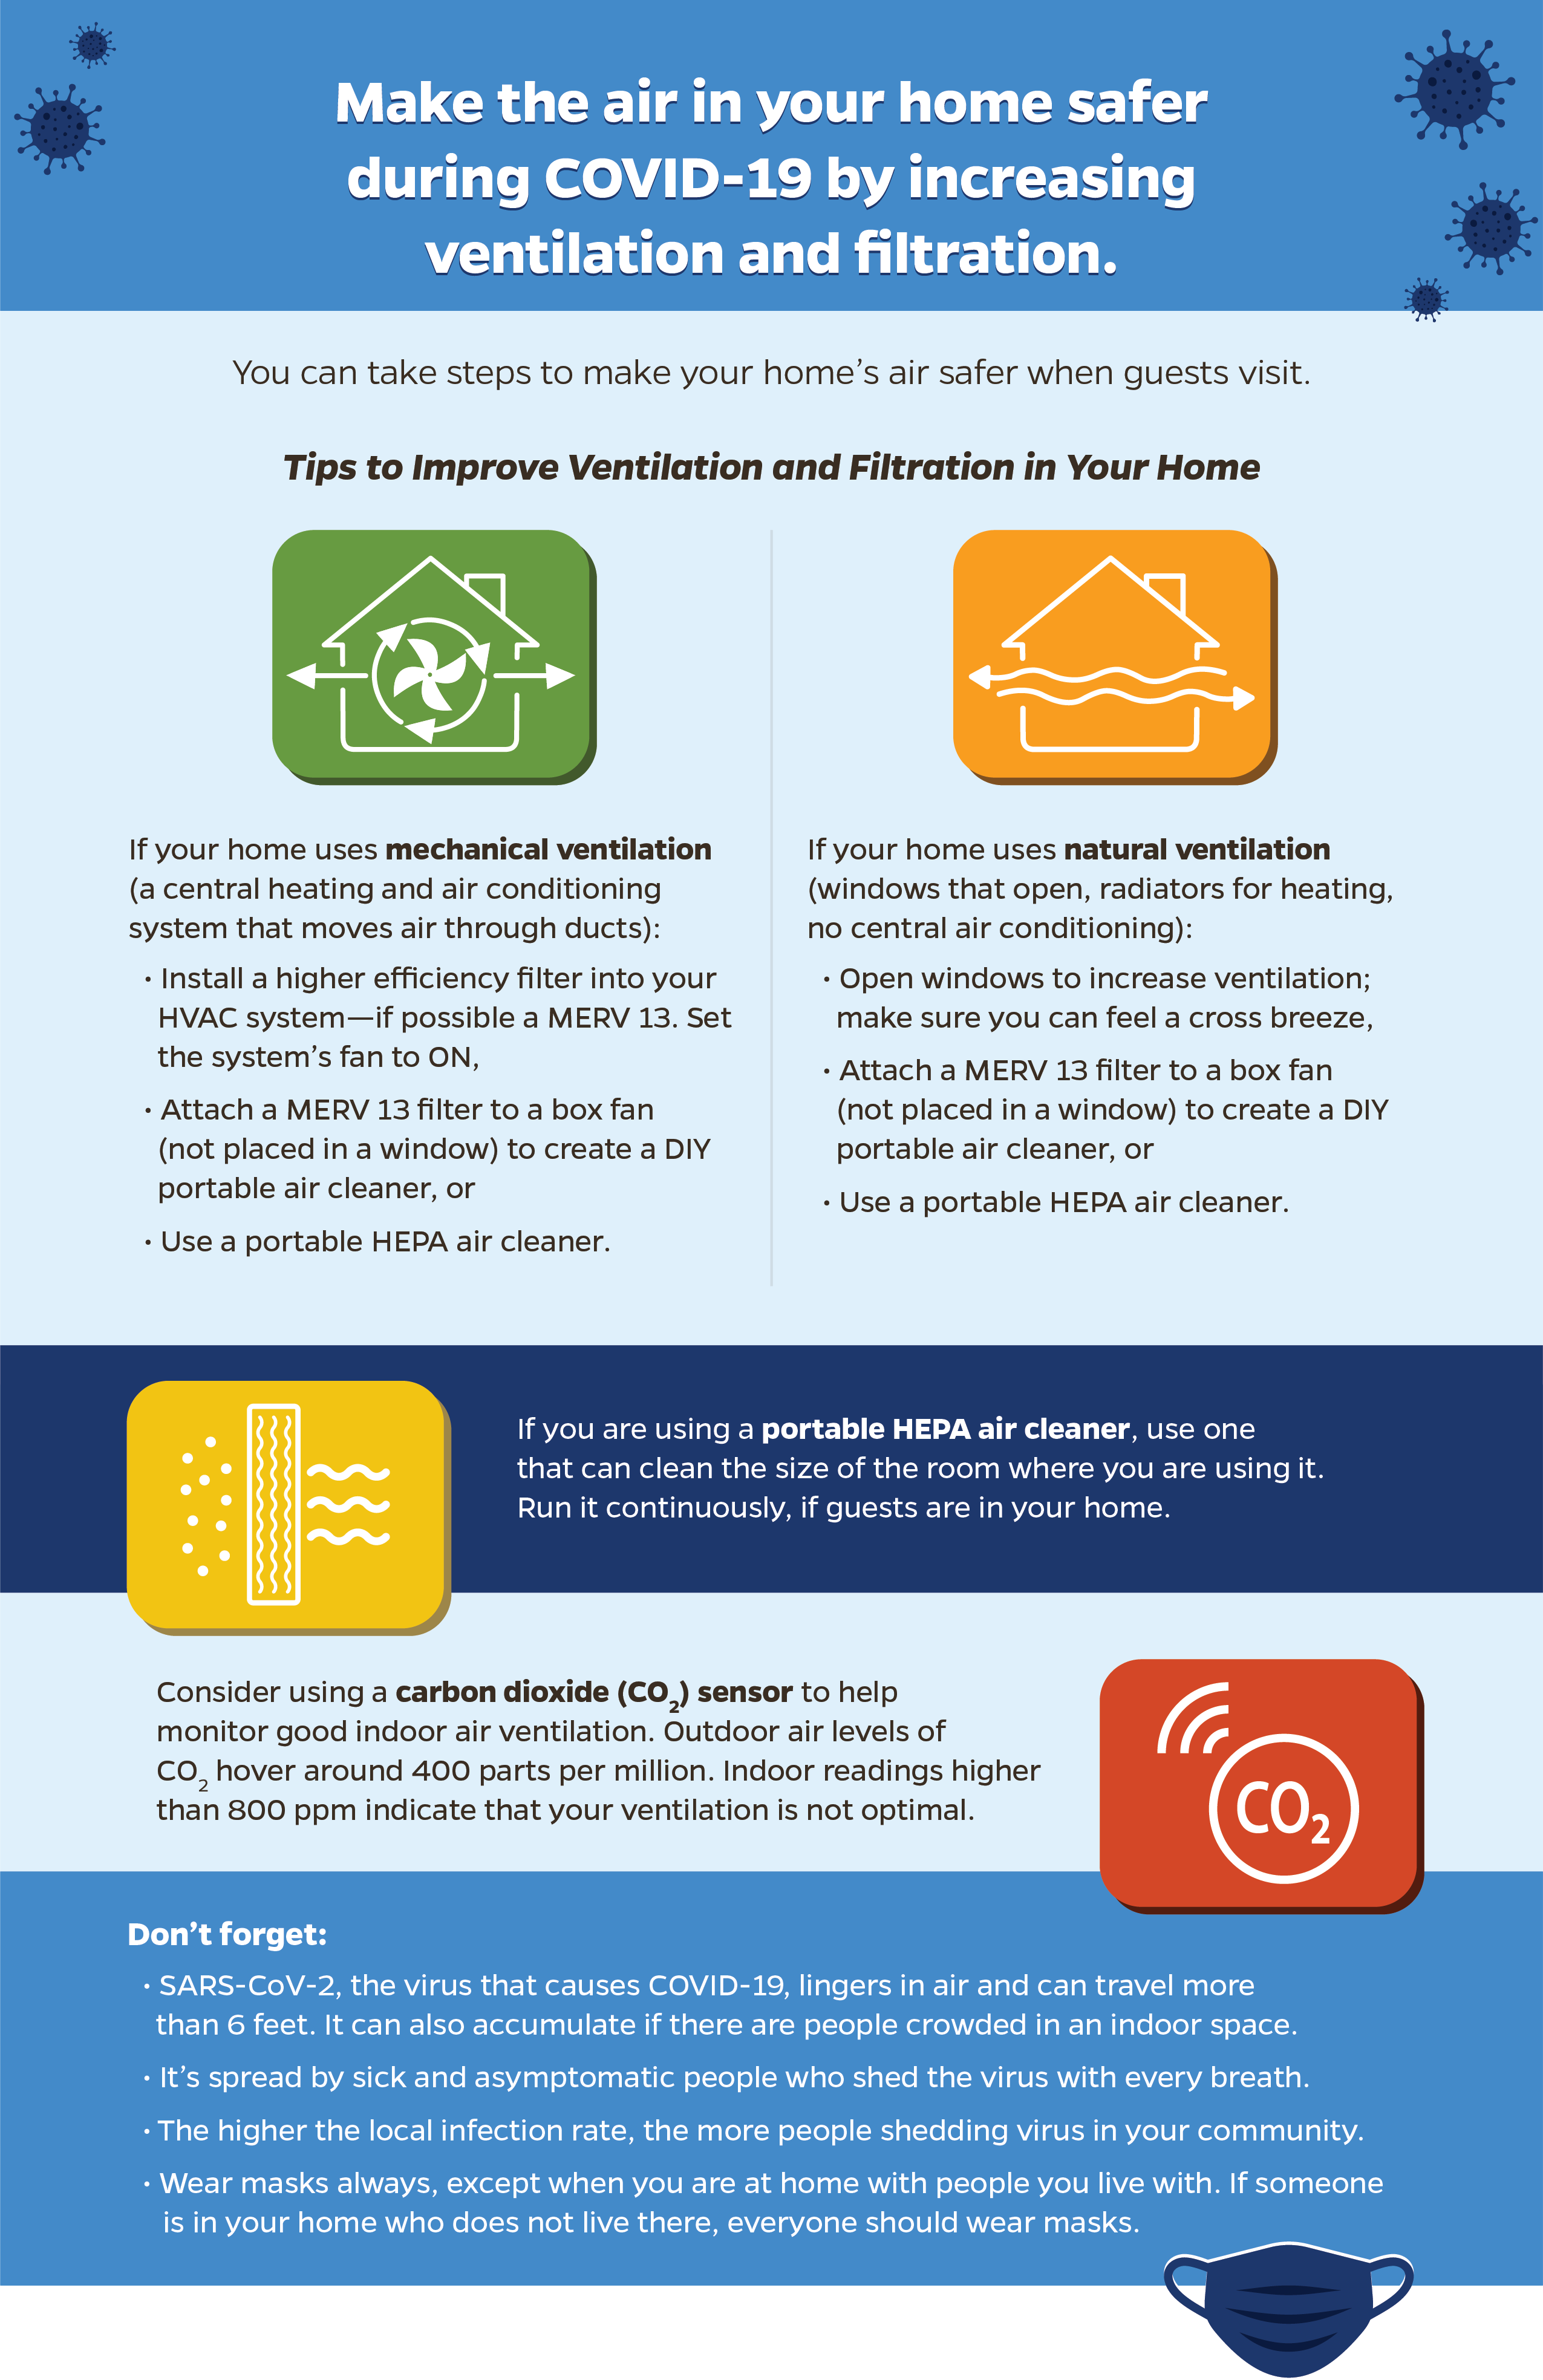 COVID-19 Infographic: Tips to make the air in your home safer from COVID-19